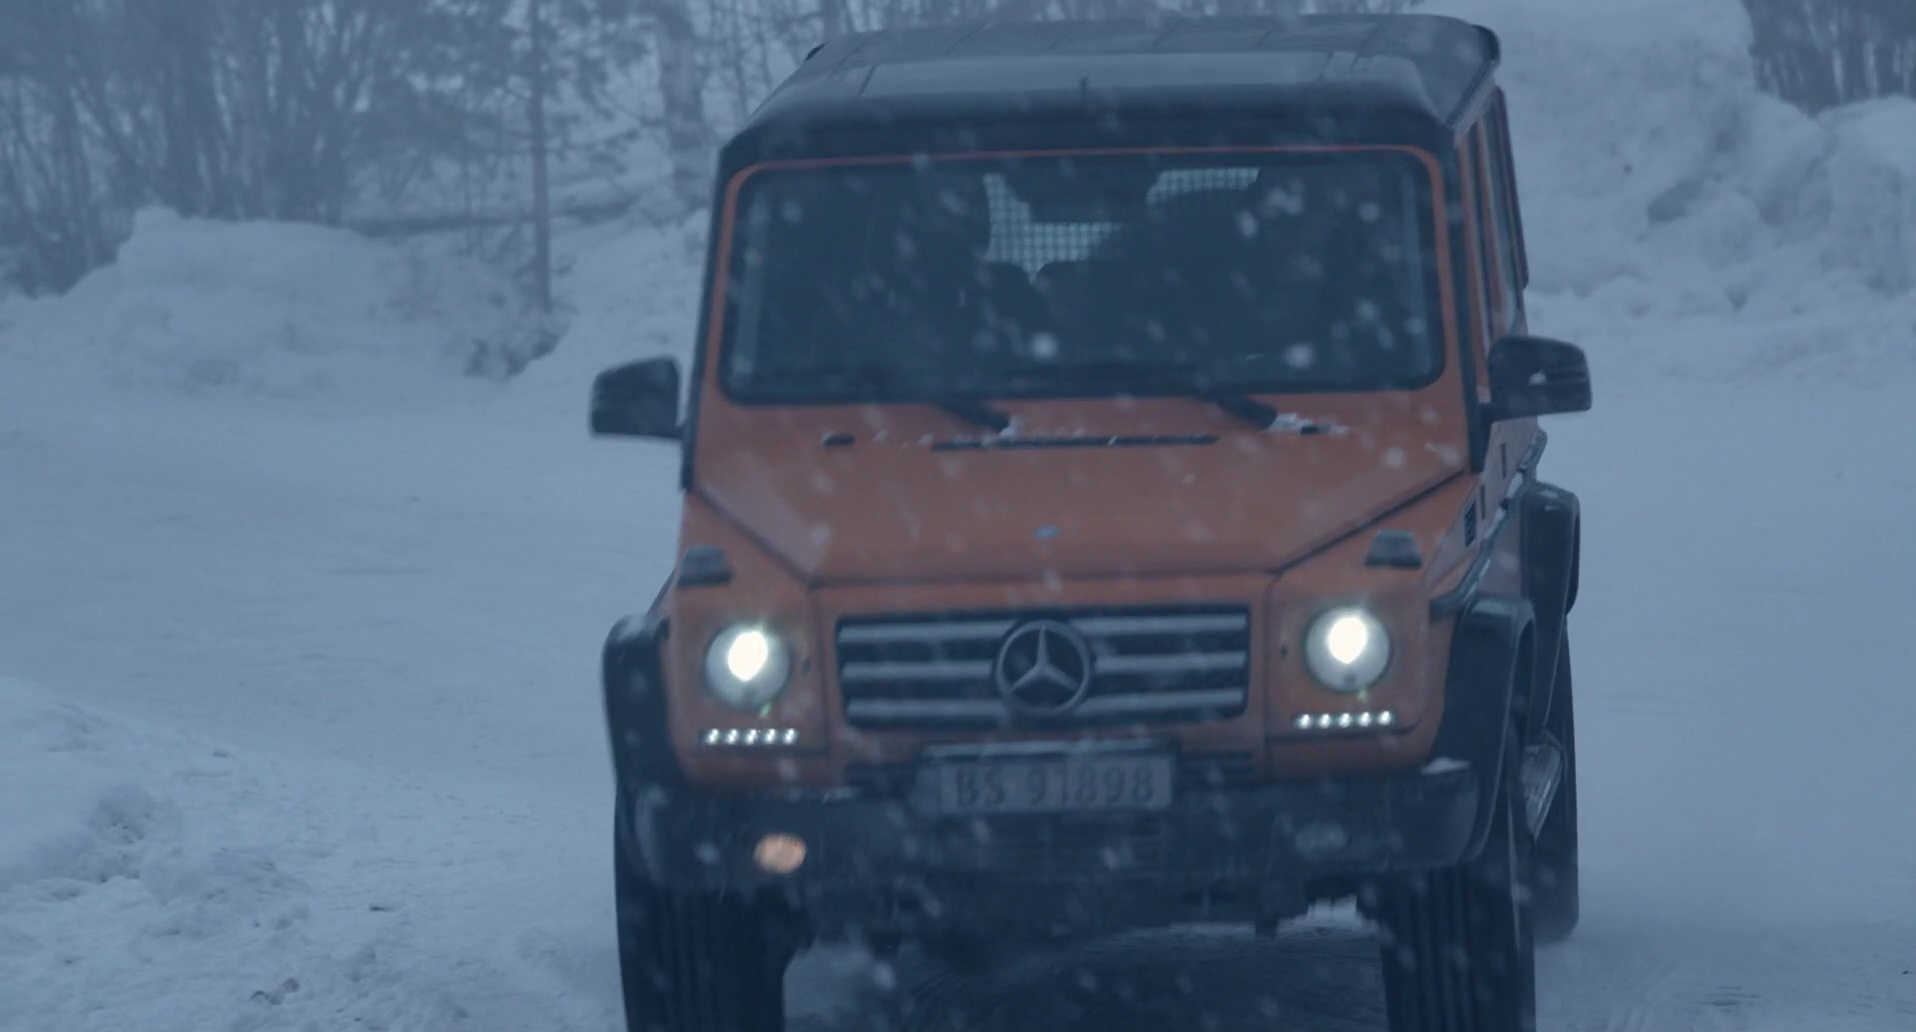 Orange Mercedes Benz G Class Car Used By Michael